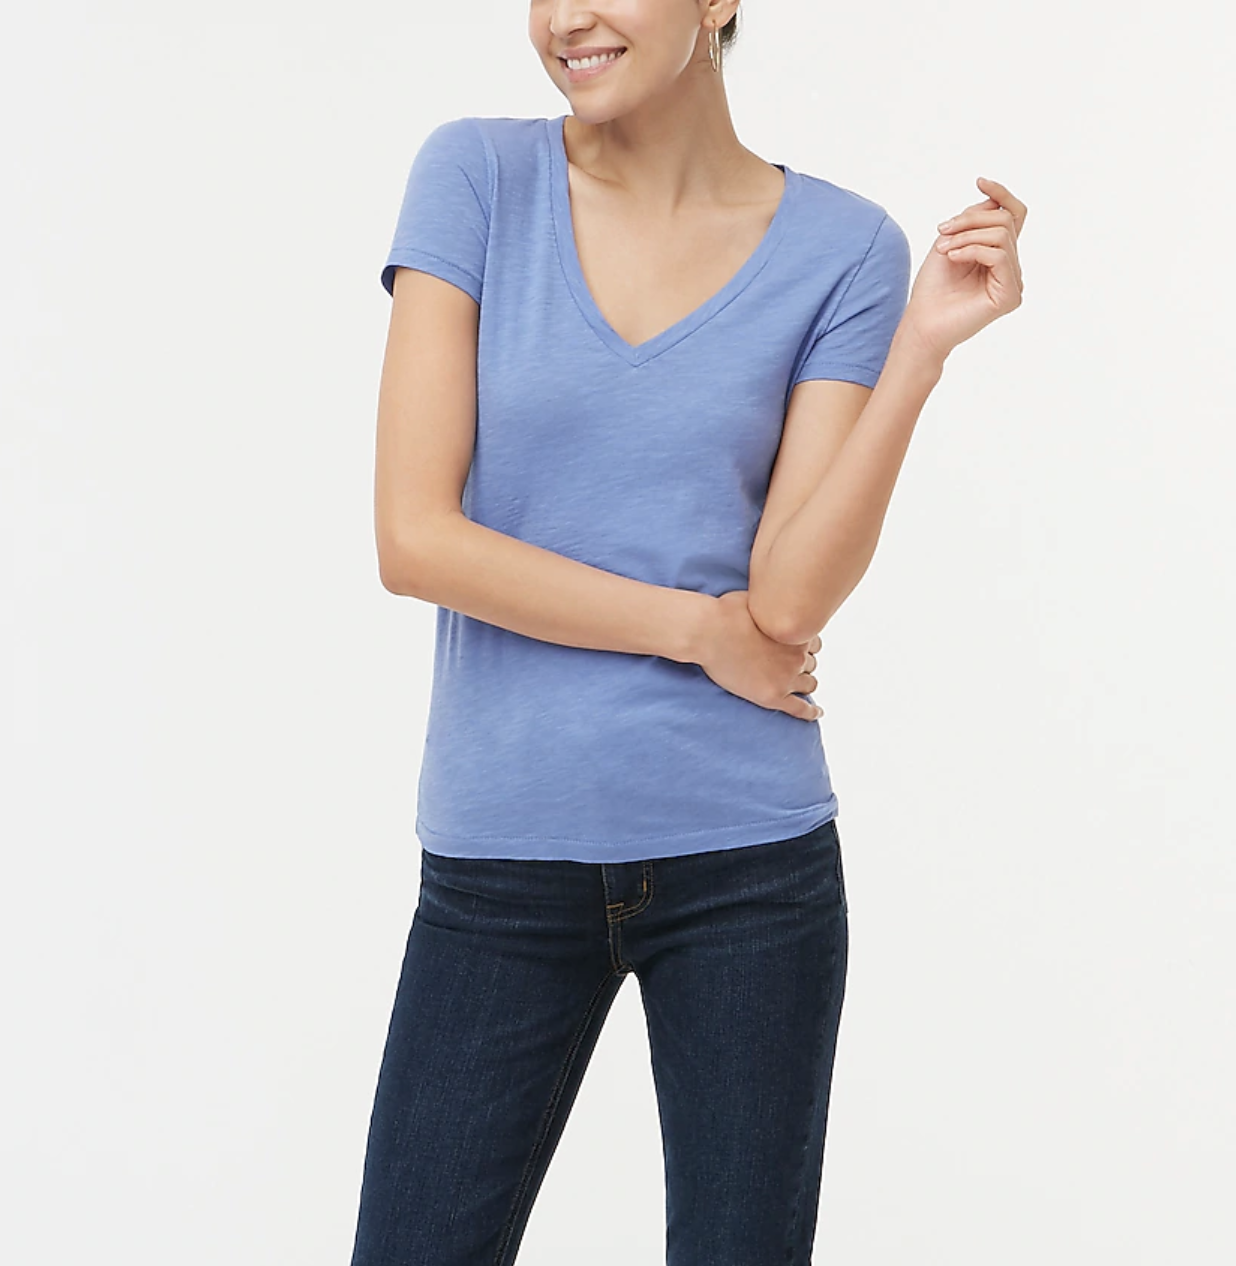 A model wears a periwinkle V-neck cotton tee with jeans